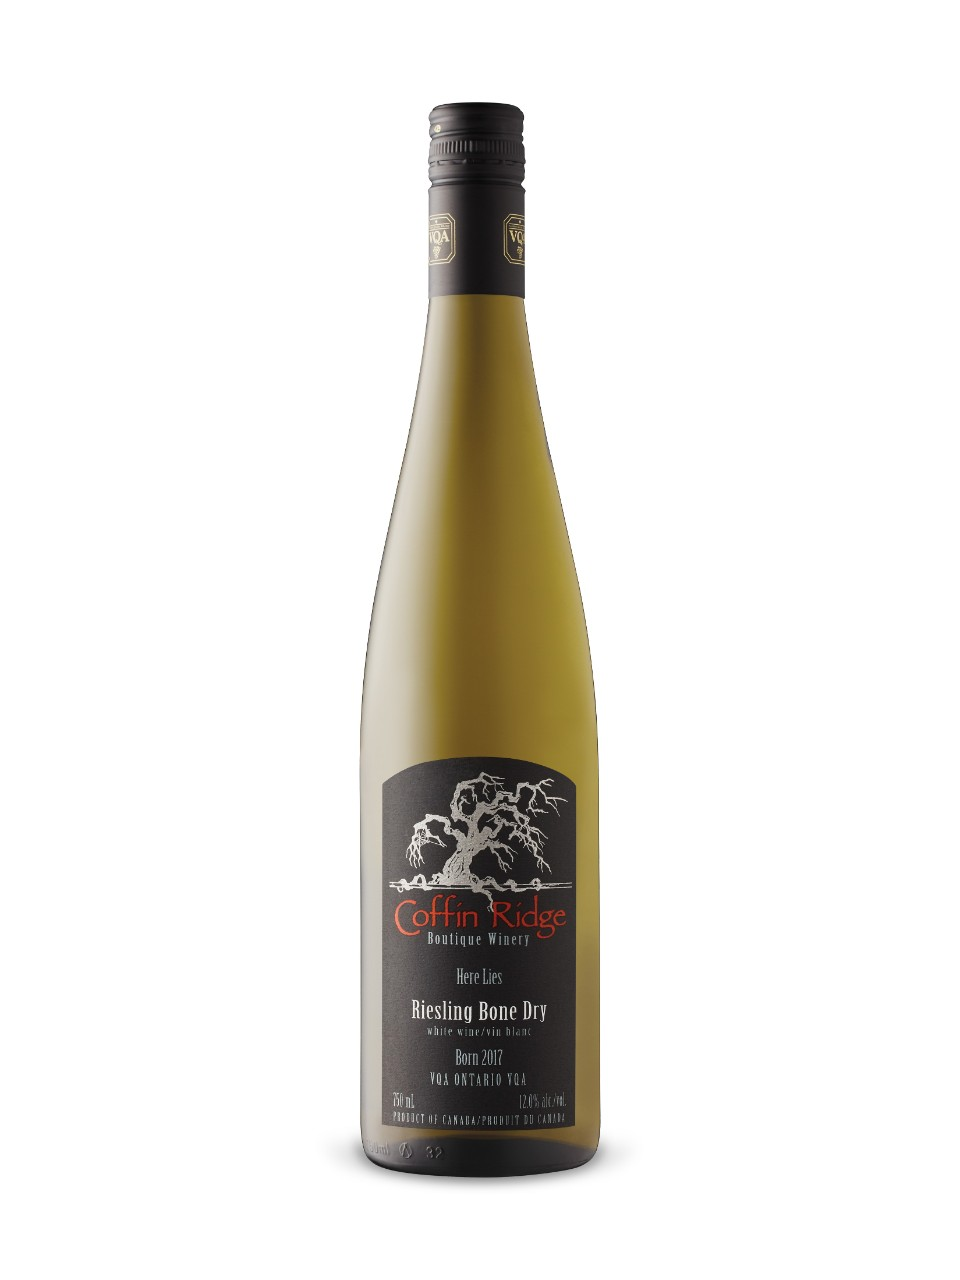 Riesling Bone Dry Coffin Ridge 2015